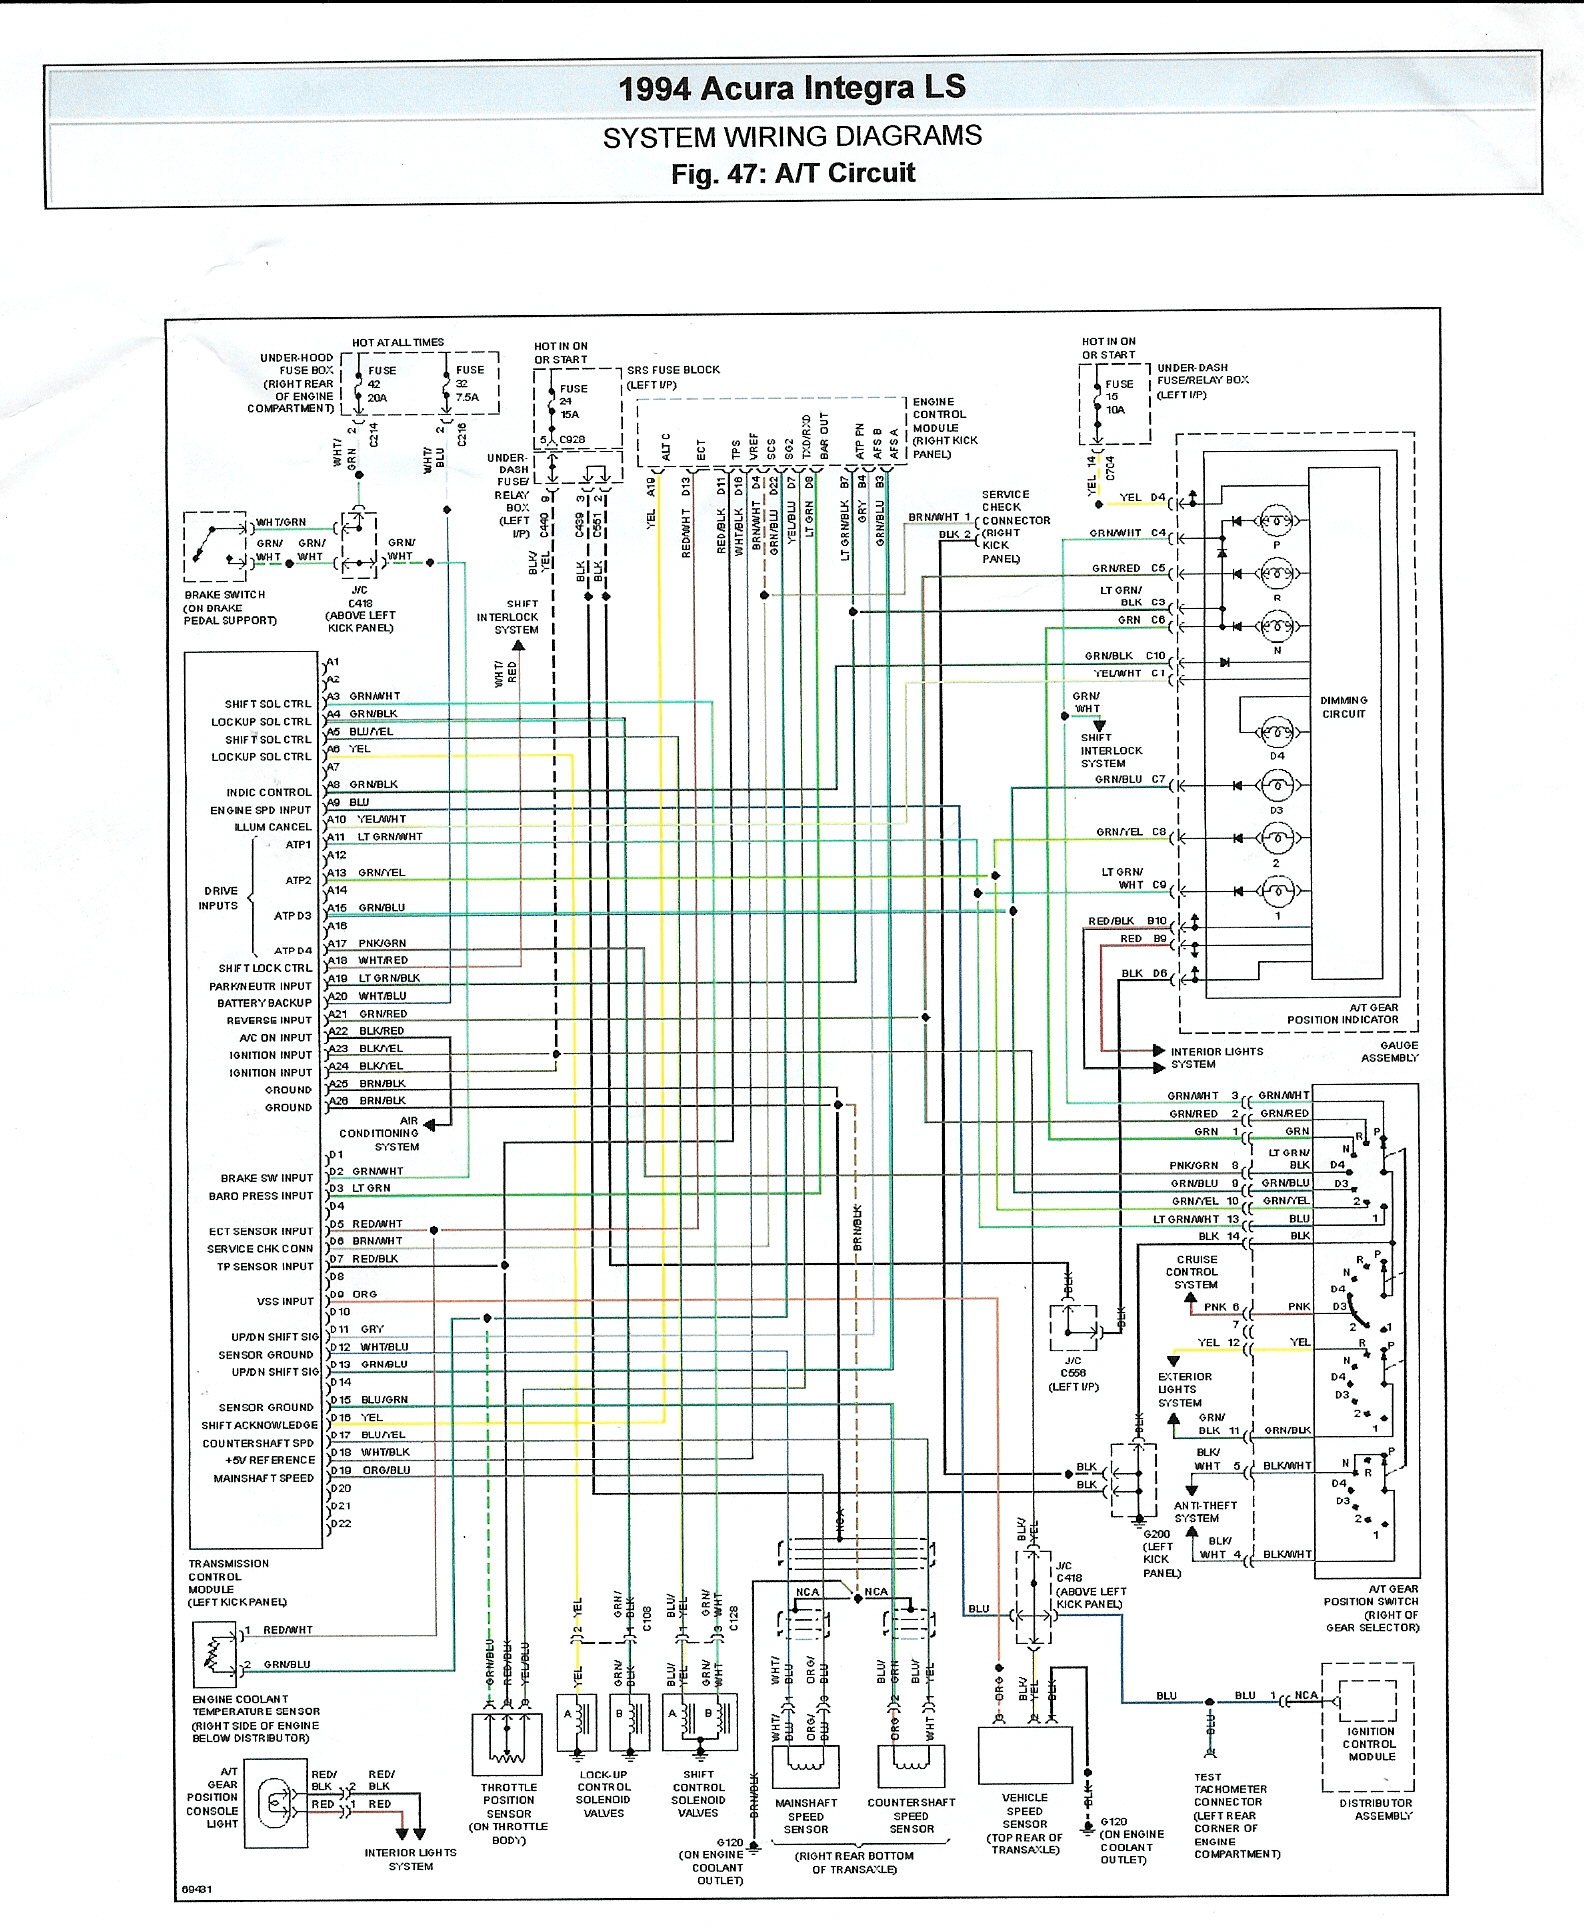 small resolution of 2011 honda pilot stereo wiring diagram 2011 honda pilot fuse box diagram 2011 honda pilot fuse box legend